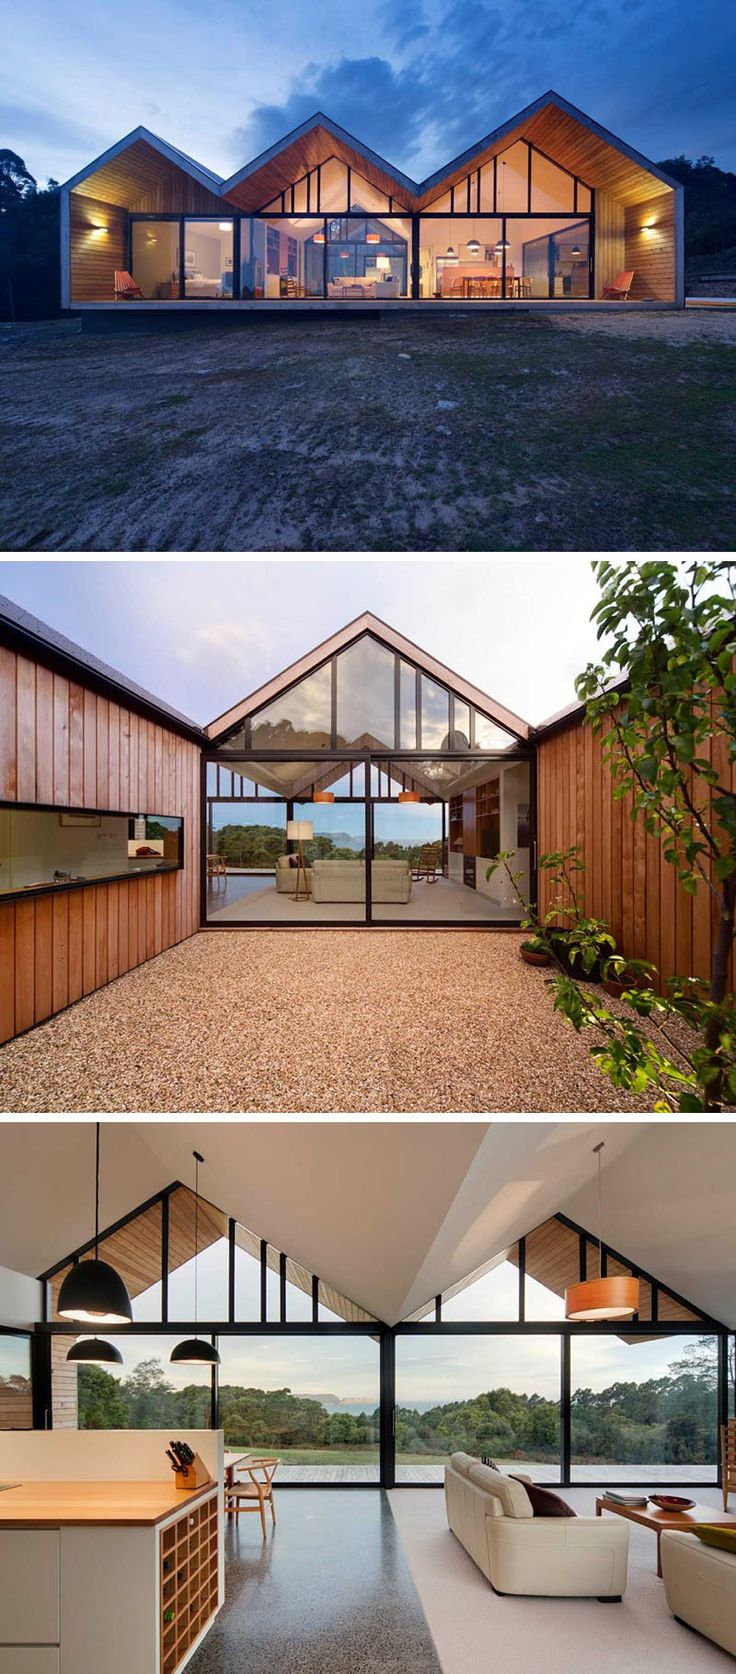 15 Examples Of Homes Where Windows Follow The Roofline // The upper windows of this Australian home follow the lines of the roof and let more light shine into the parts of the home where the family spends most of their time, helping keep the space bright at all times of the day.